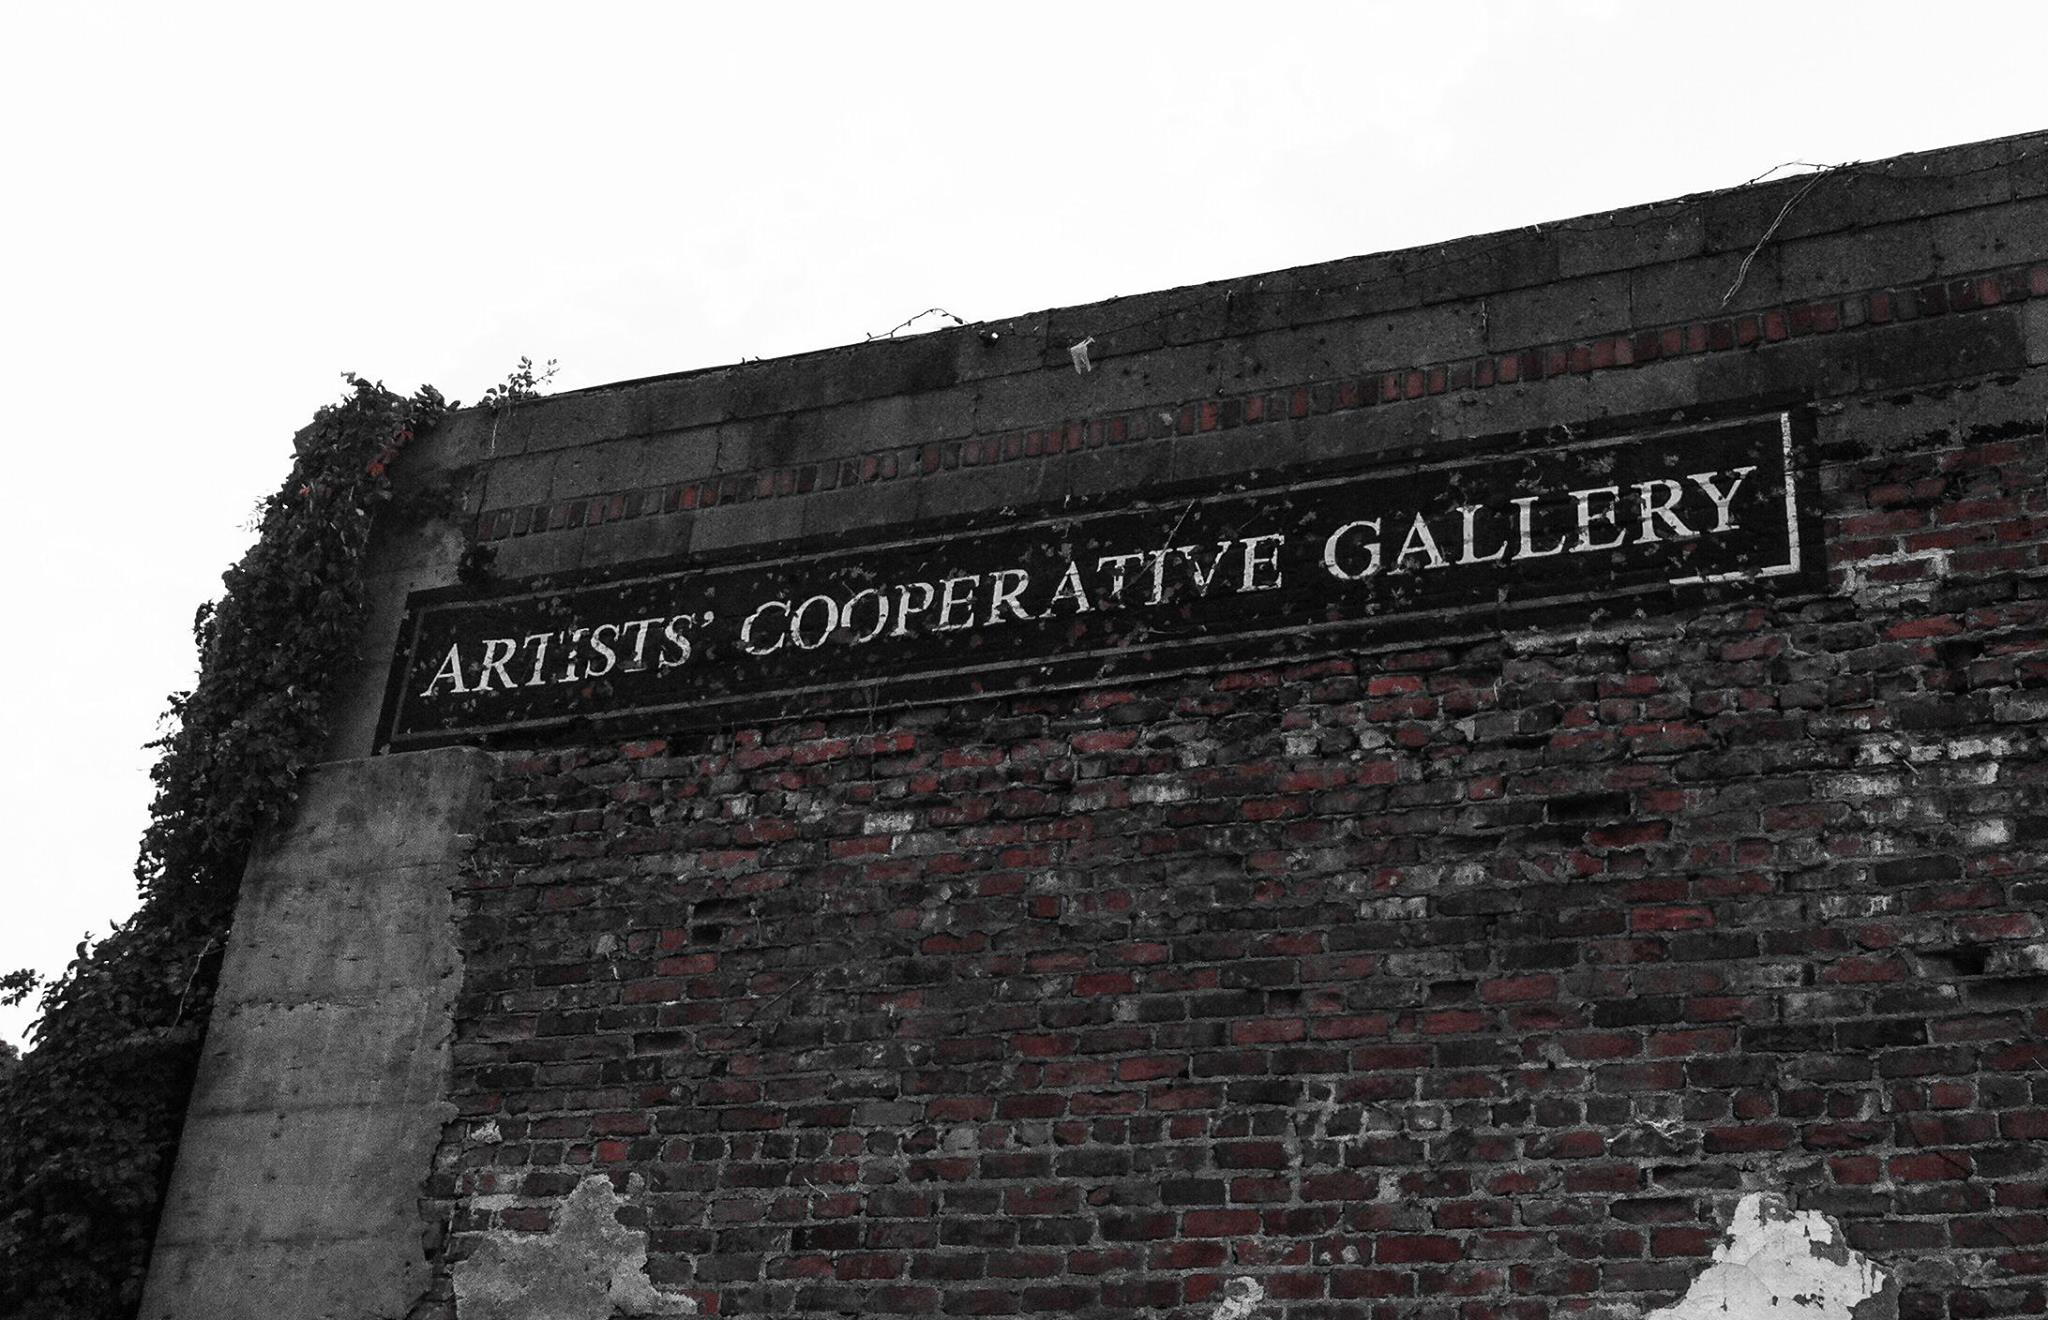 Artists' Cooperative Gallery